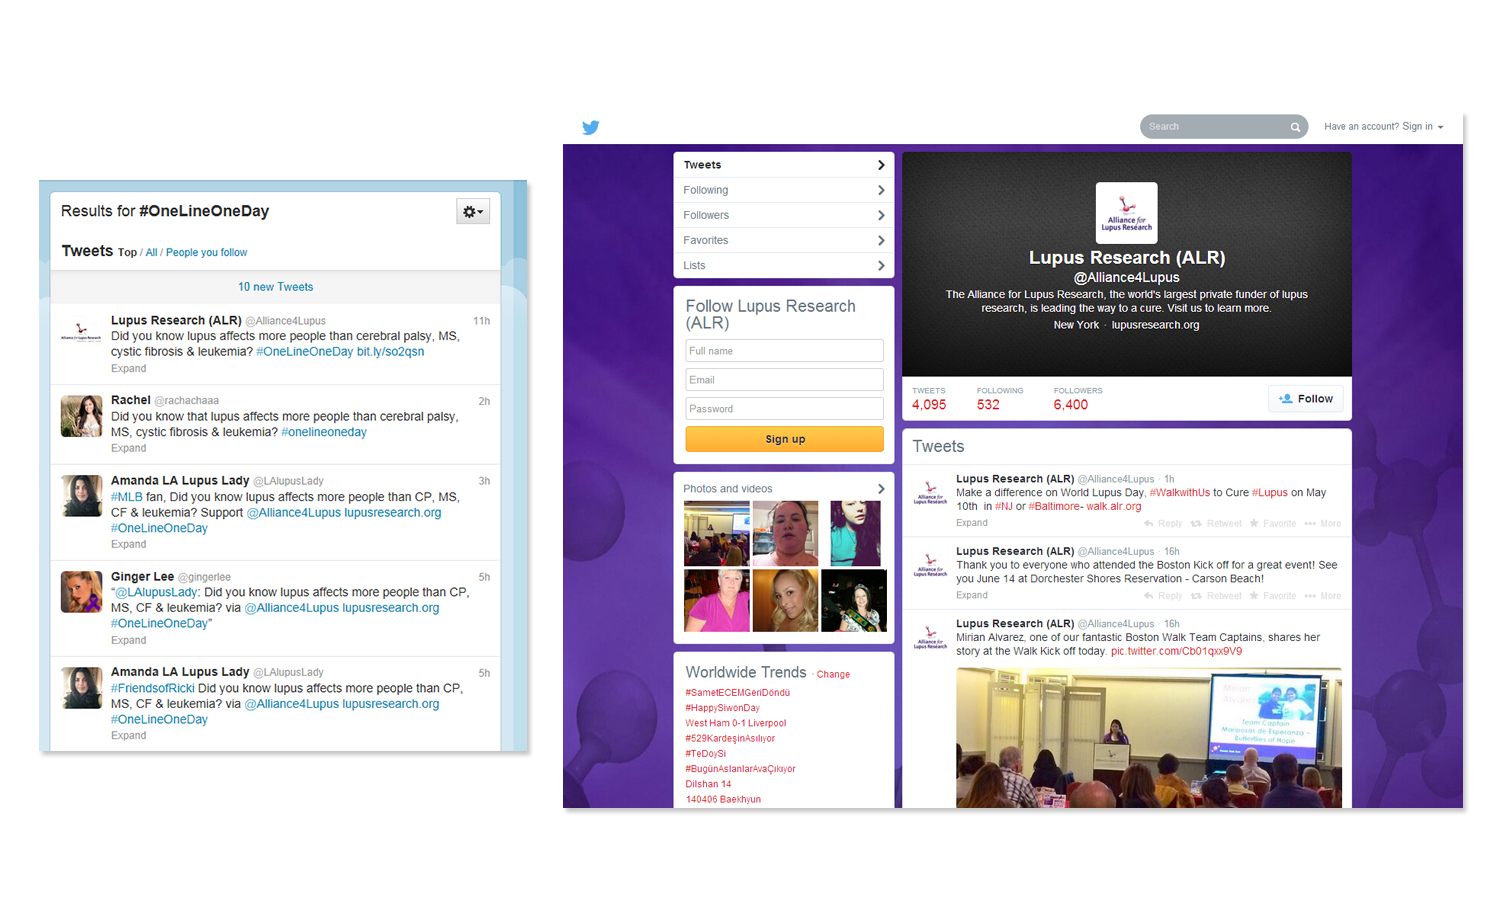 Alliance for Lupus Research Social Media Campaign Twitter